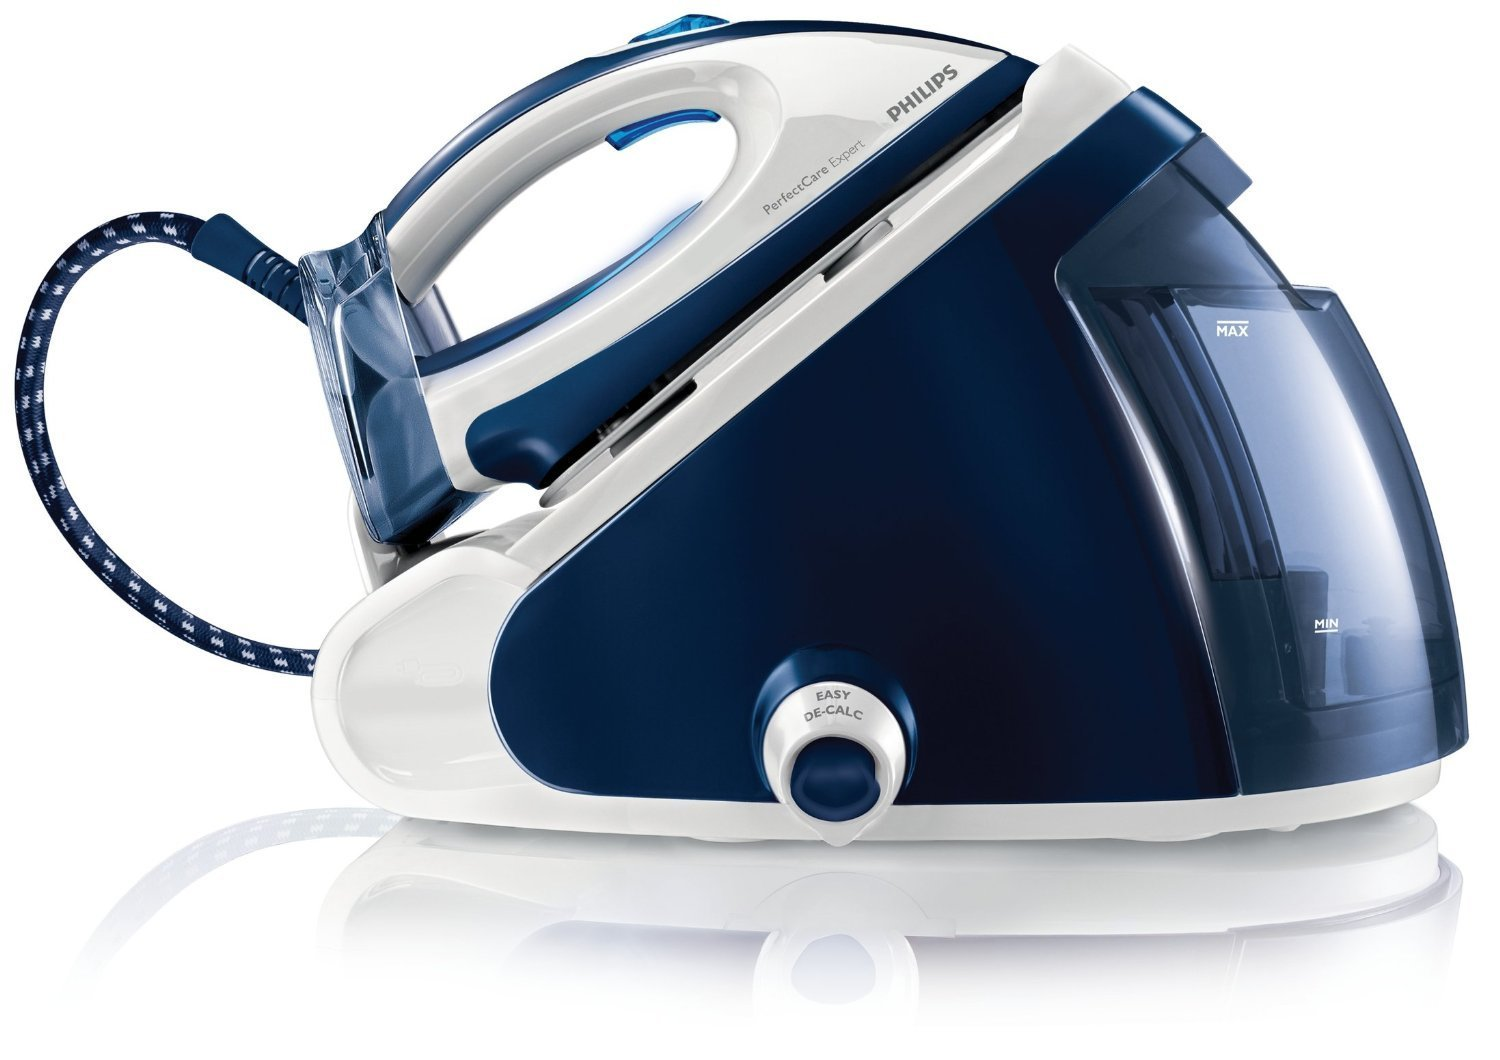 Best Philips nd Steam Generator Iron Reviews UK 2018 on